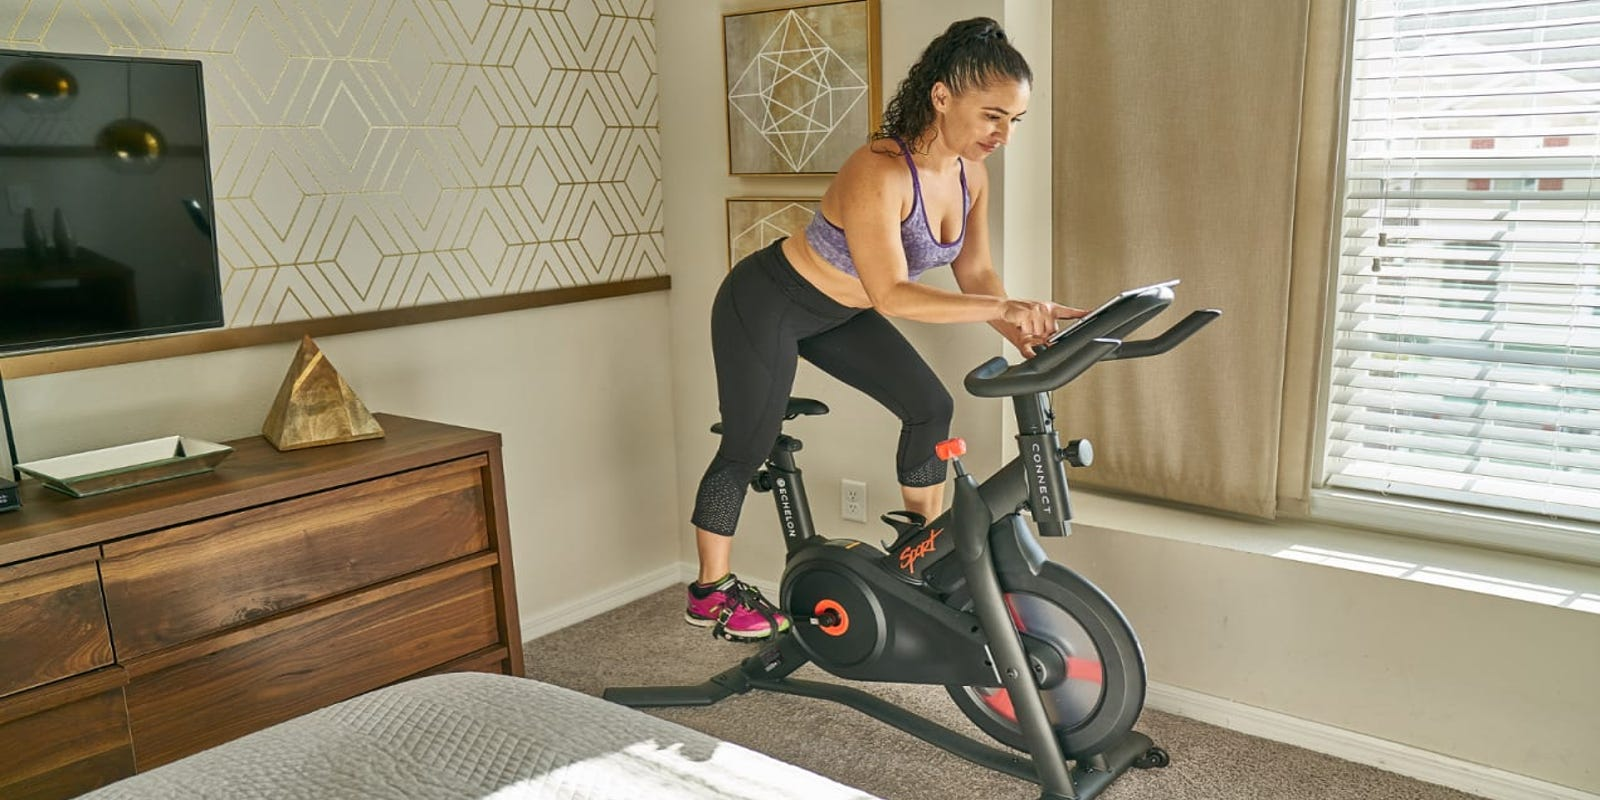 15 highly rated pieces of fitness equipment you can get at Walmart